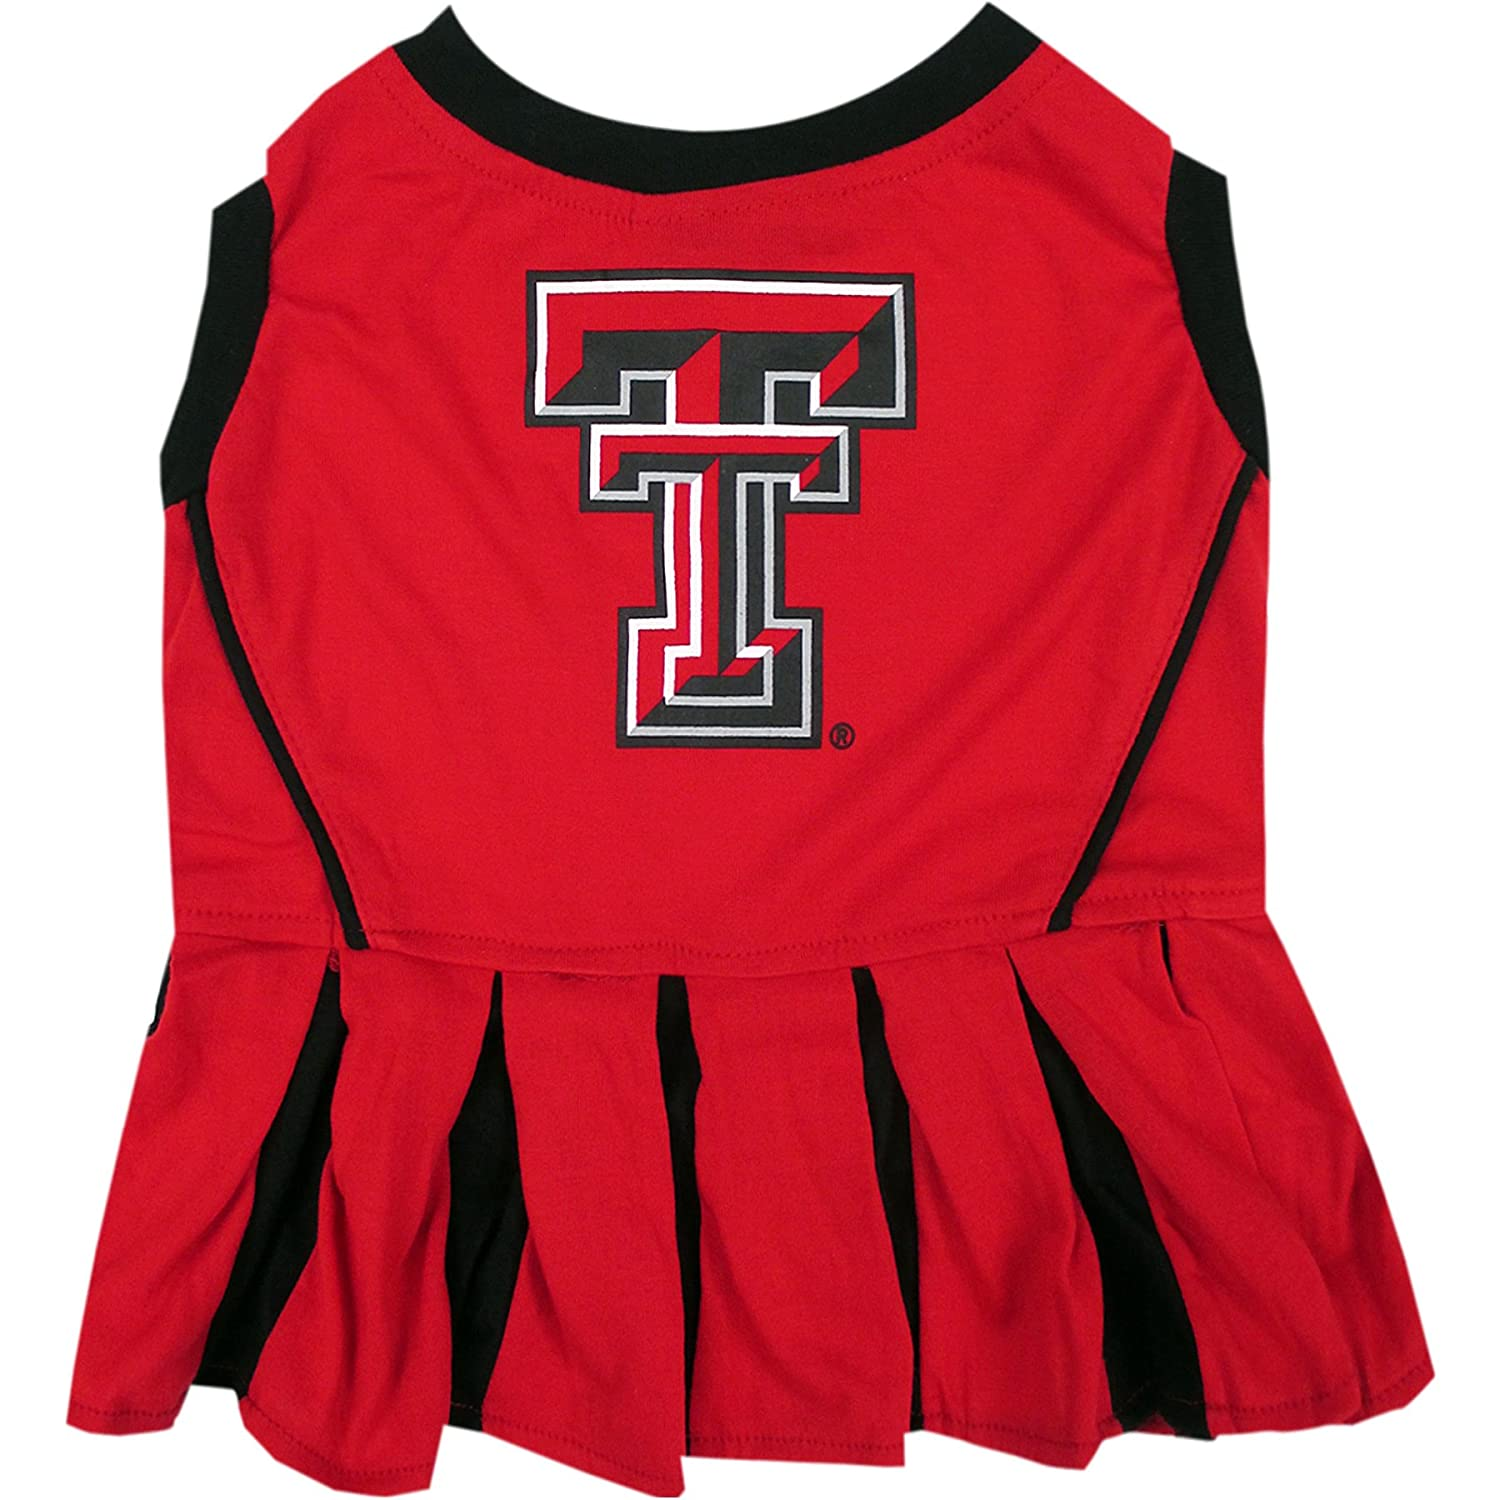 Pets First Texas Tech Raiders Cheerleading Outfit X-Small TT-4007-XS